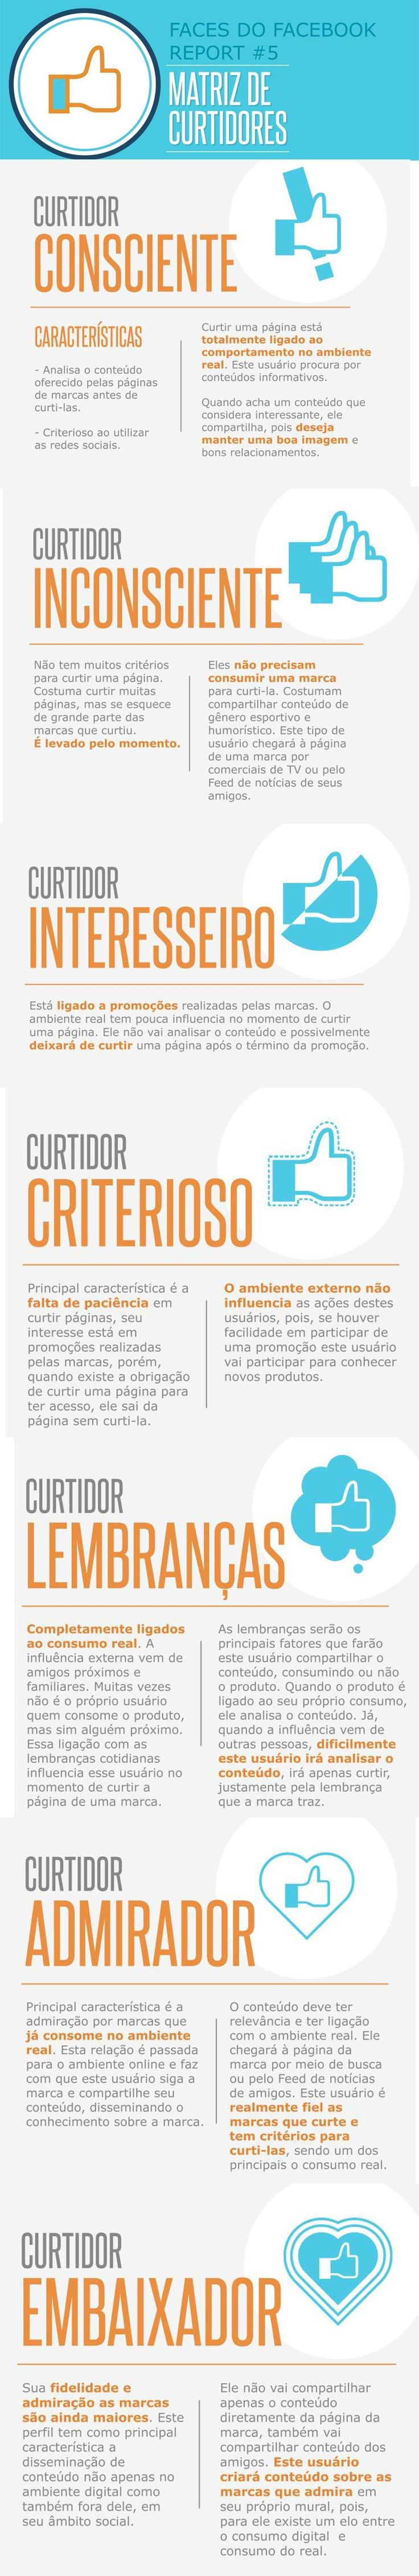 Os 7 tipos de curtidores do #Facebook. #SocialMedia